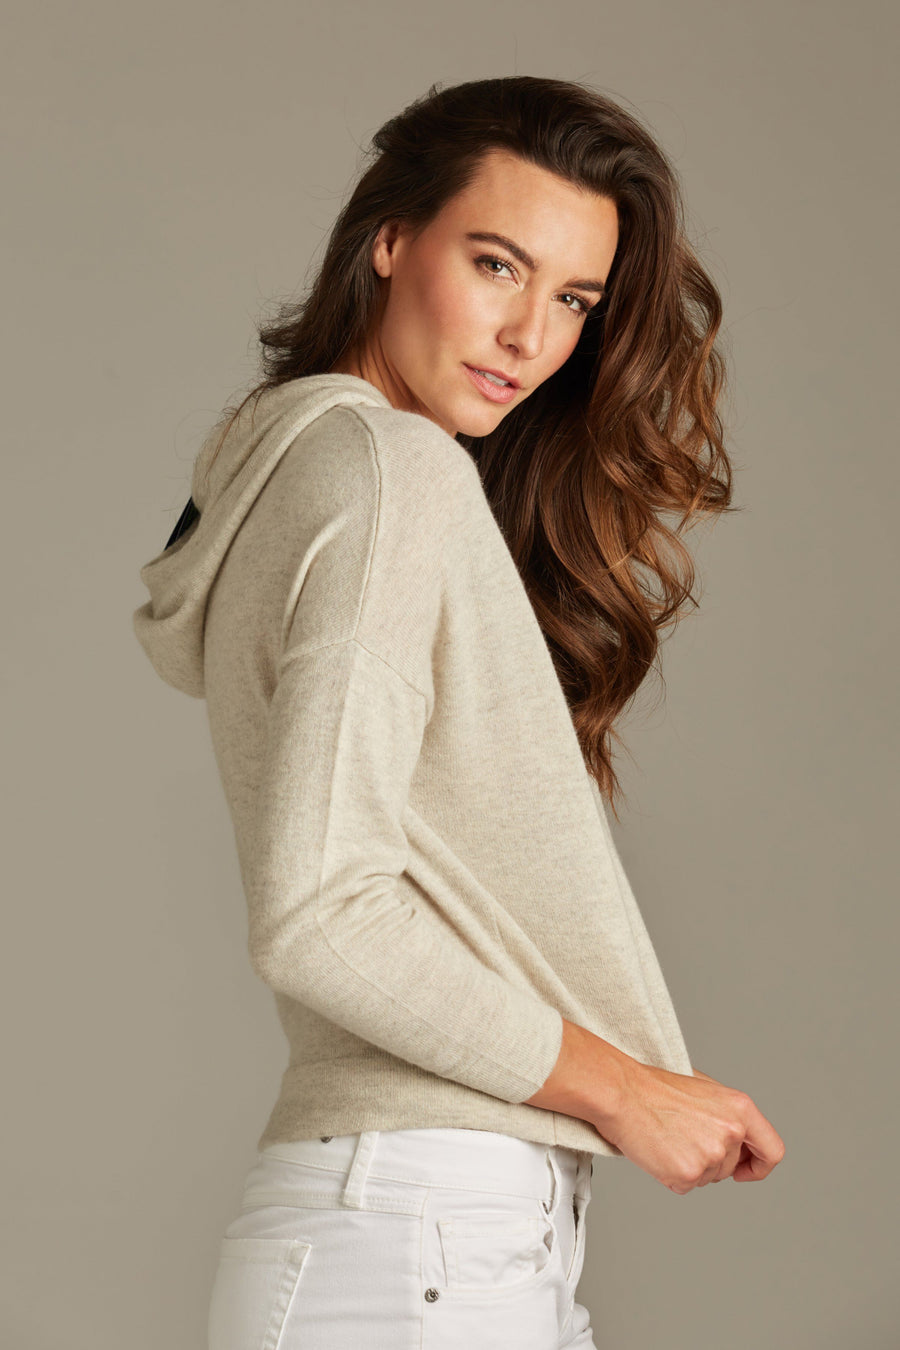 pine cashmere riley women's 100% pure cashmere cropped hoodie in grey